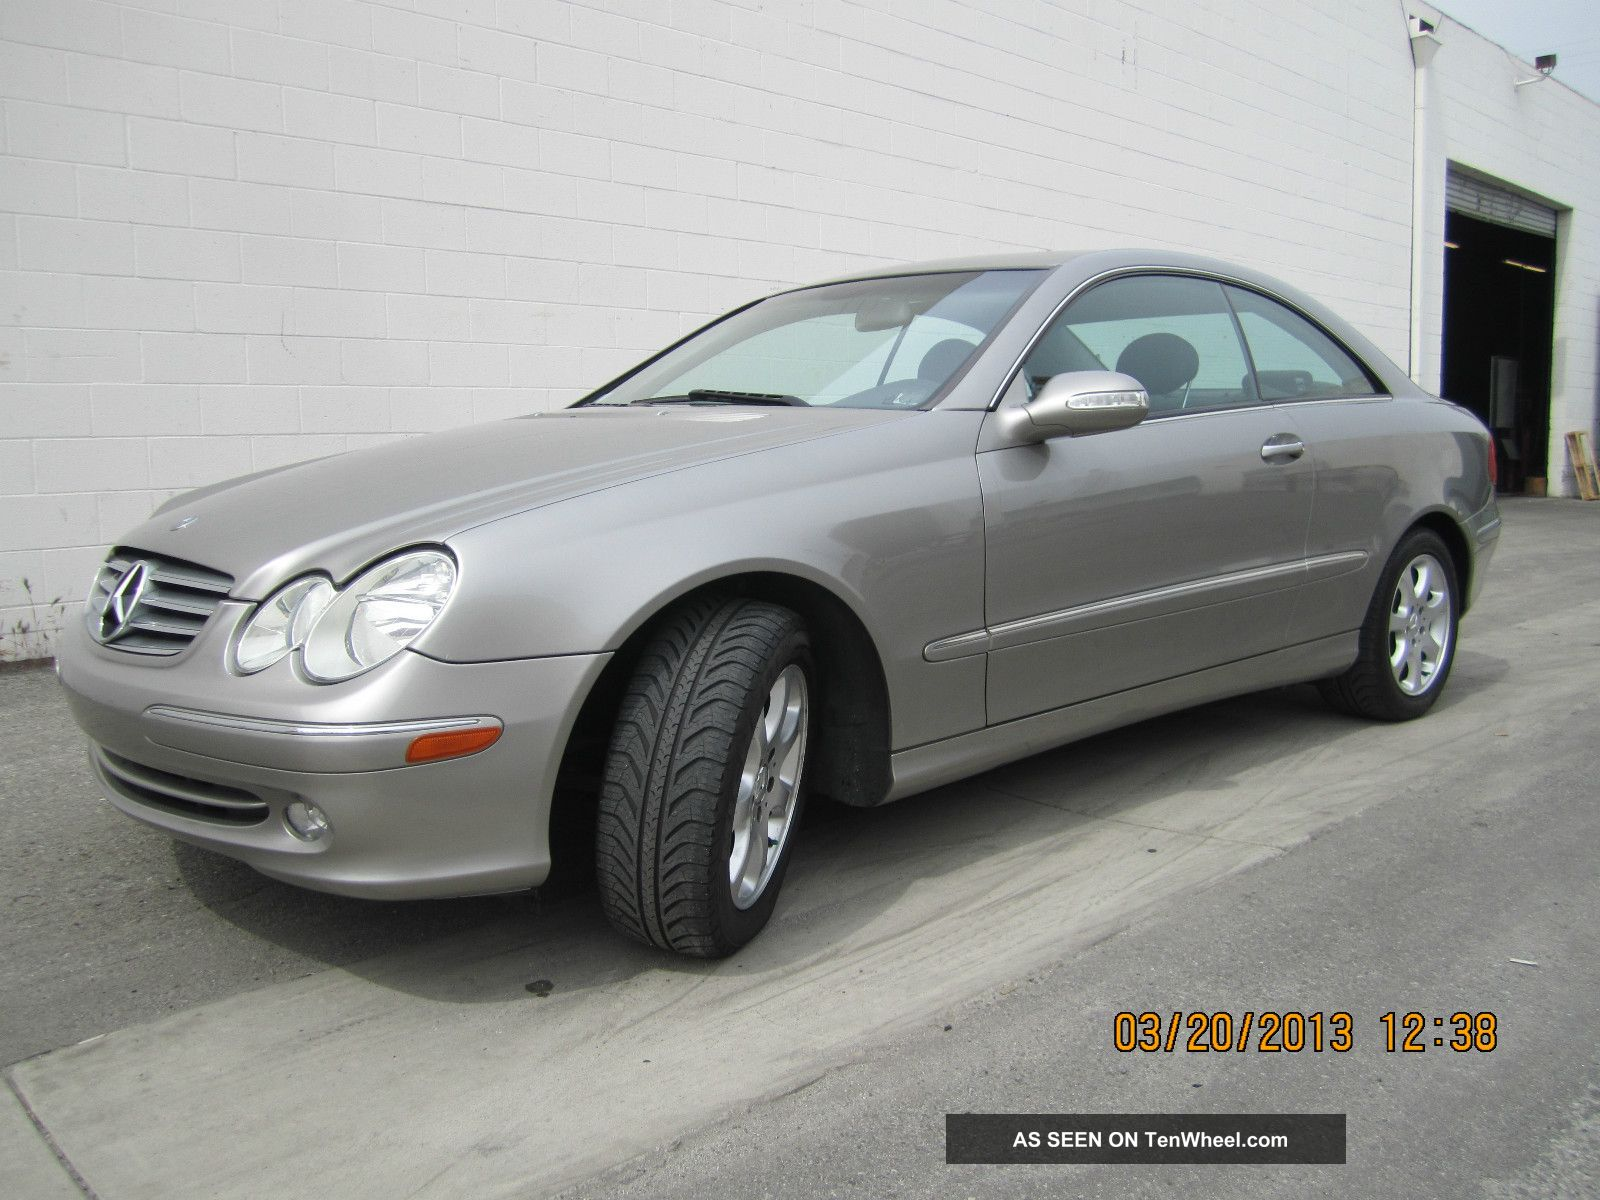 2004 mercedes benz clk320 base coupe 2 door 3 2l for 2004 mercedes benz clk 500